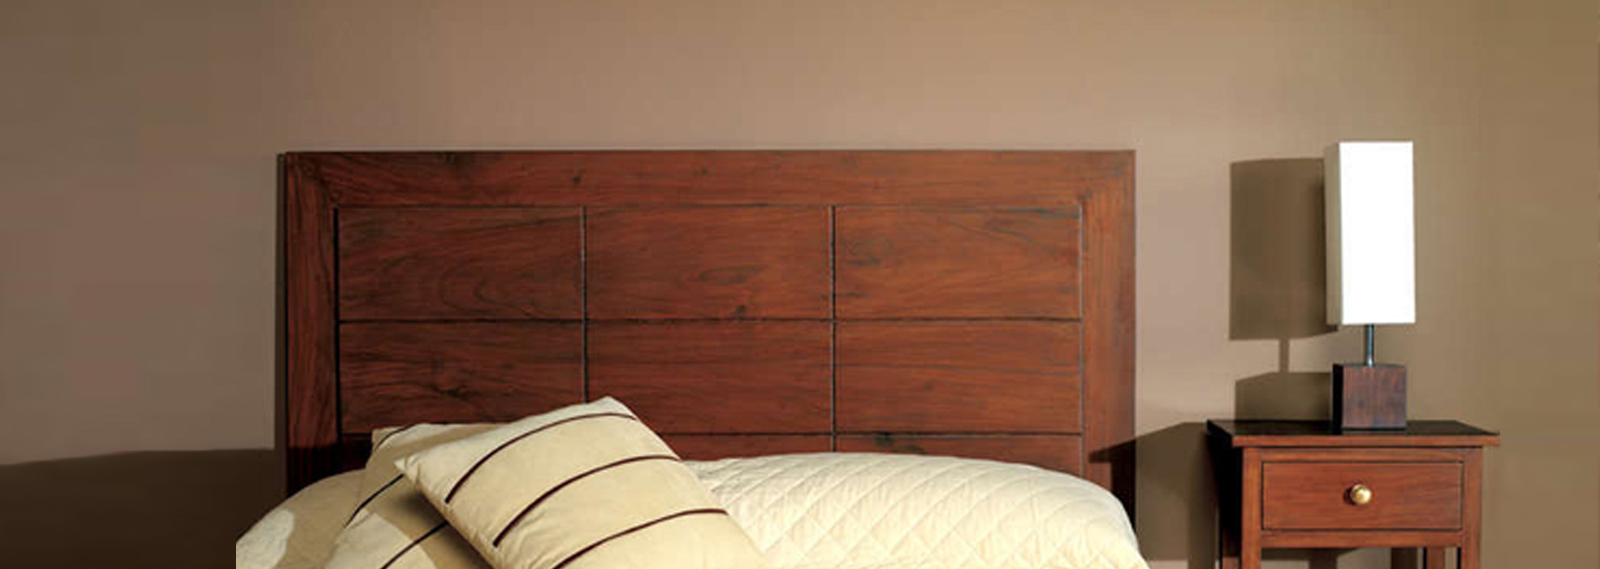 Sheesham Hardwood Rosewood Wooden Lifestyle Luxury Furniture Shope Store Pune Bangalore